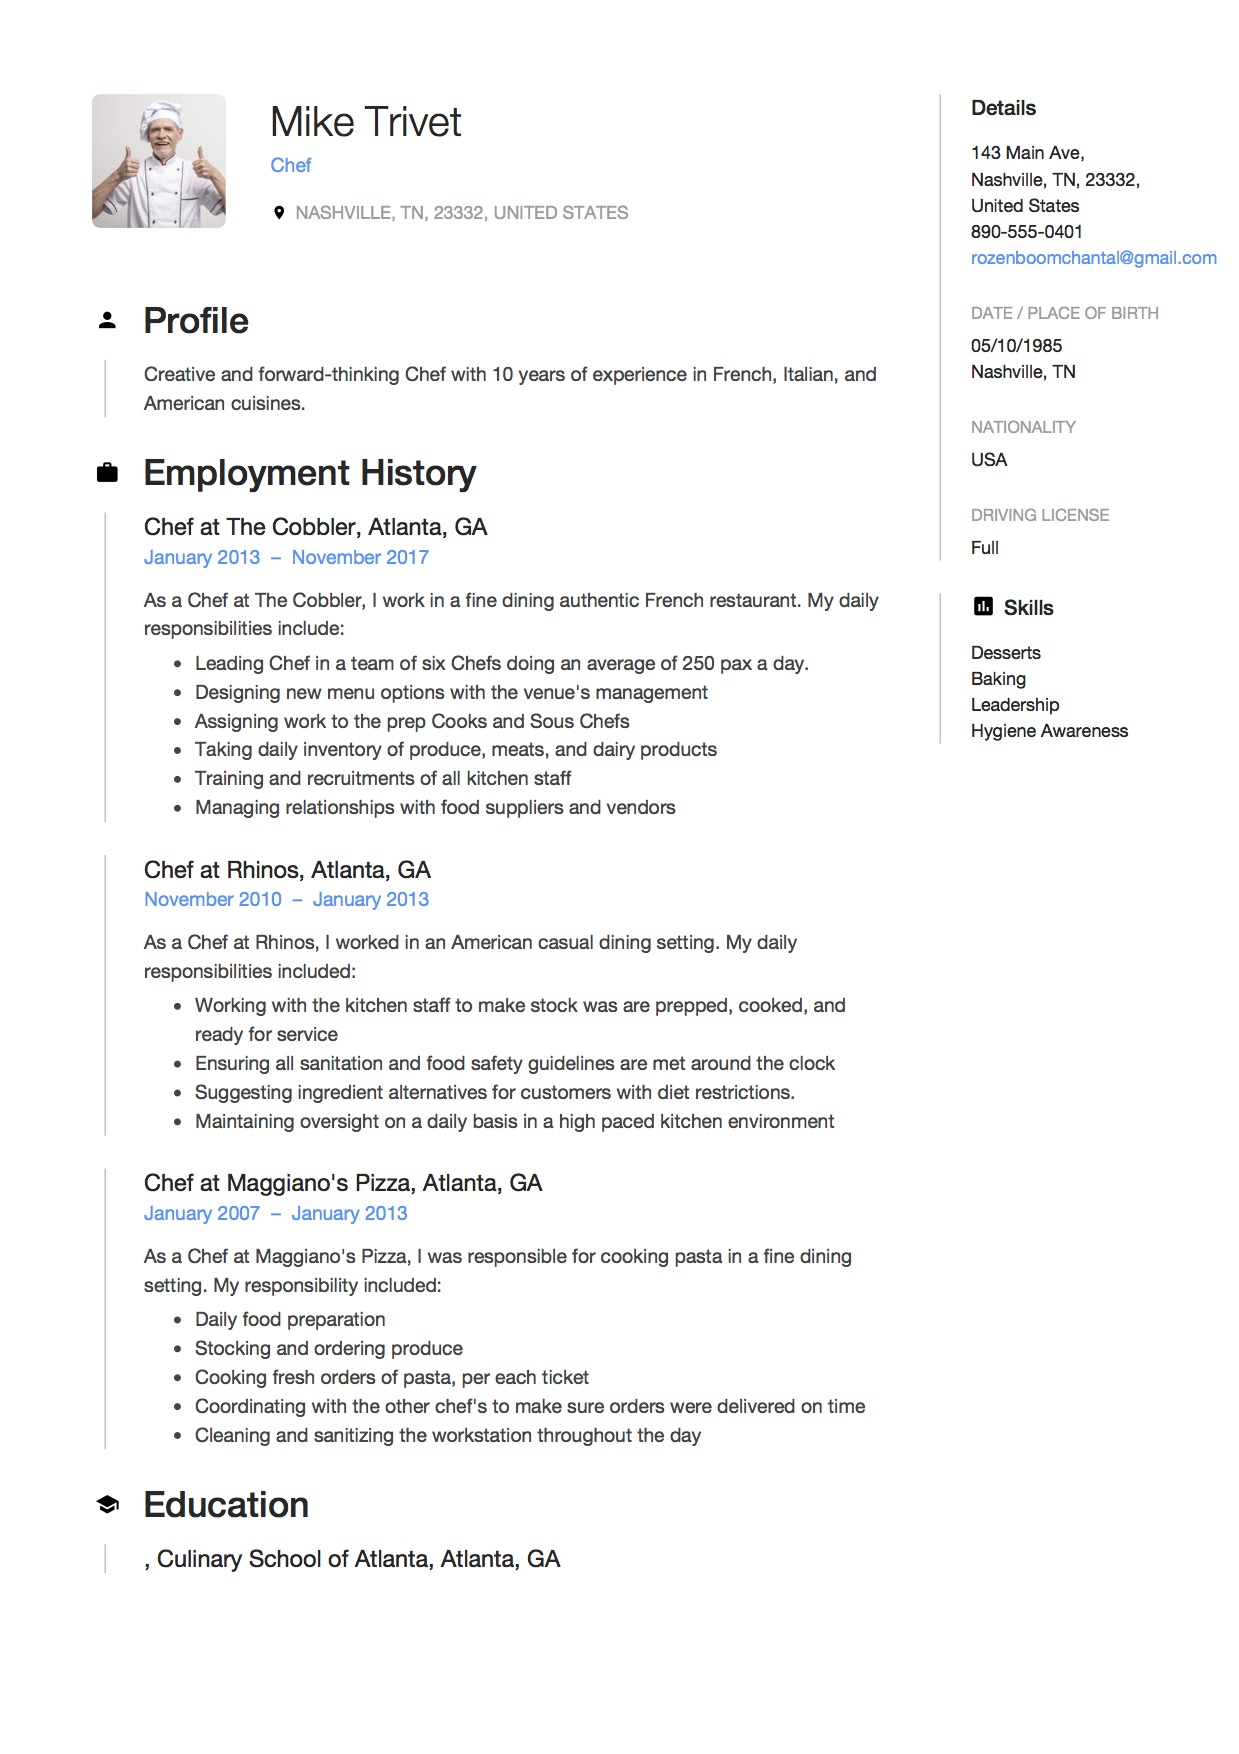 chef resume writing guide free templates pdf experienced mike trivet nursing examples Resume Experienced Chef Resume